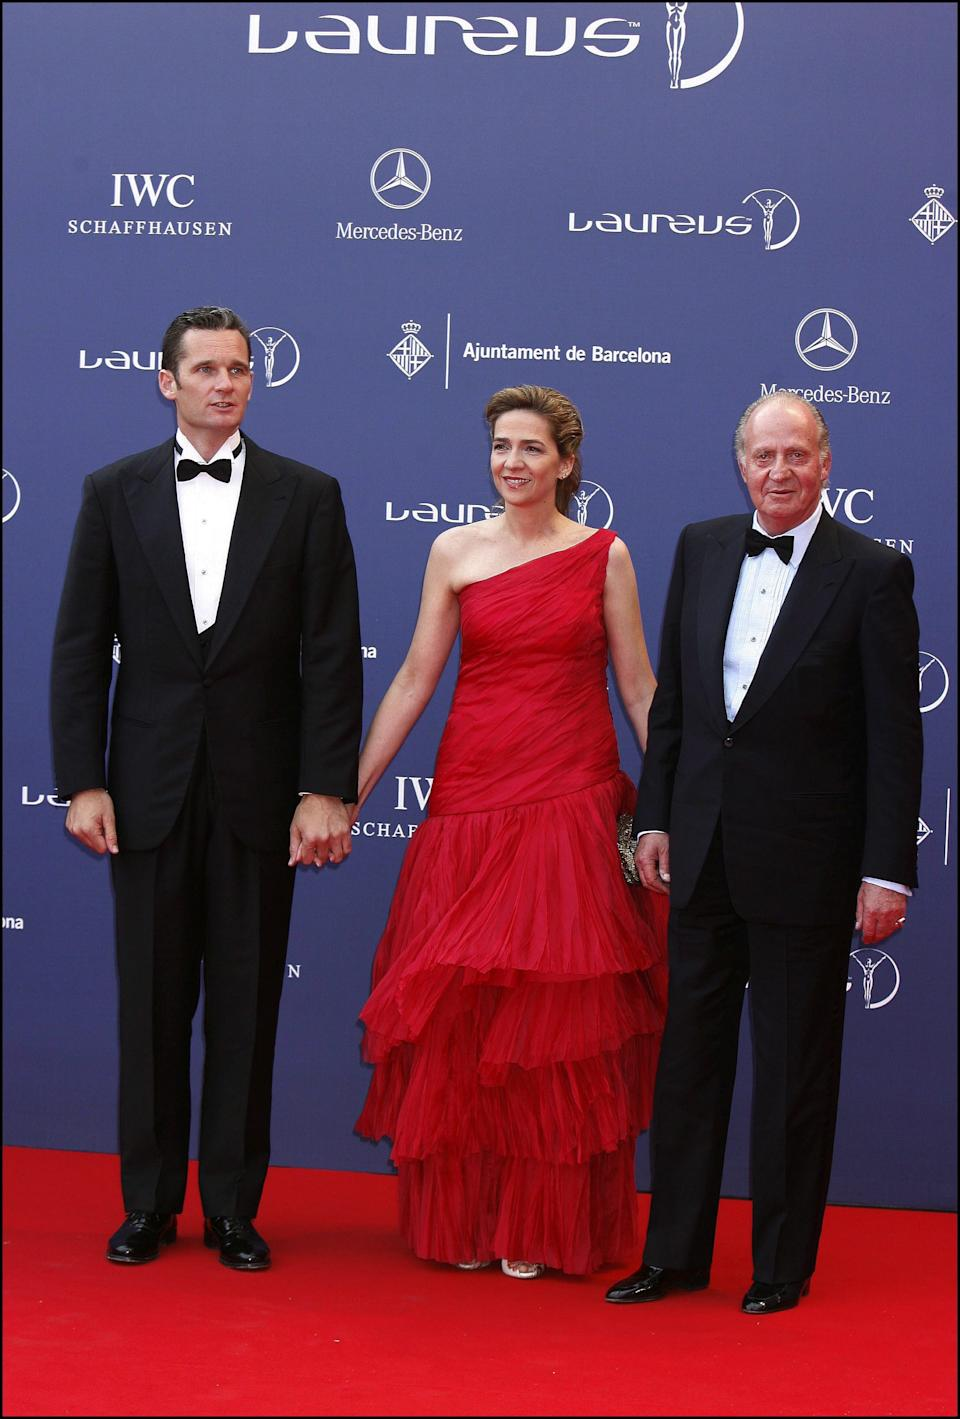 SPAIN - MAY 22:  Laureus World Sport Awards In Barcelona, Spain On May 21, 2006 - King Juan Carlos & daughter Infanta Cristina with husband Inaki Urdangarin.  (Photo by LEBON/Gamma-Rapho via Getty Images)